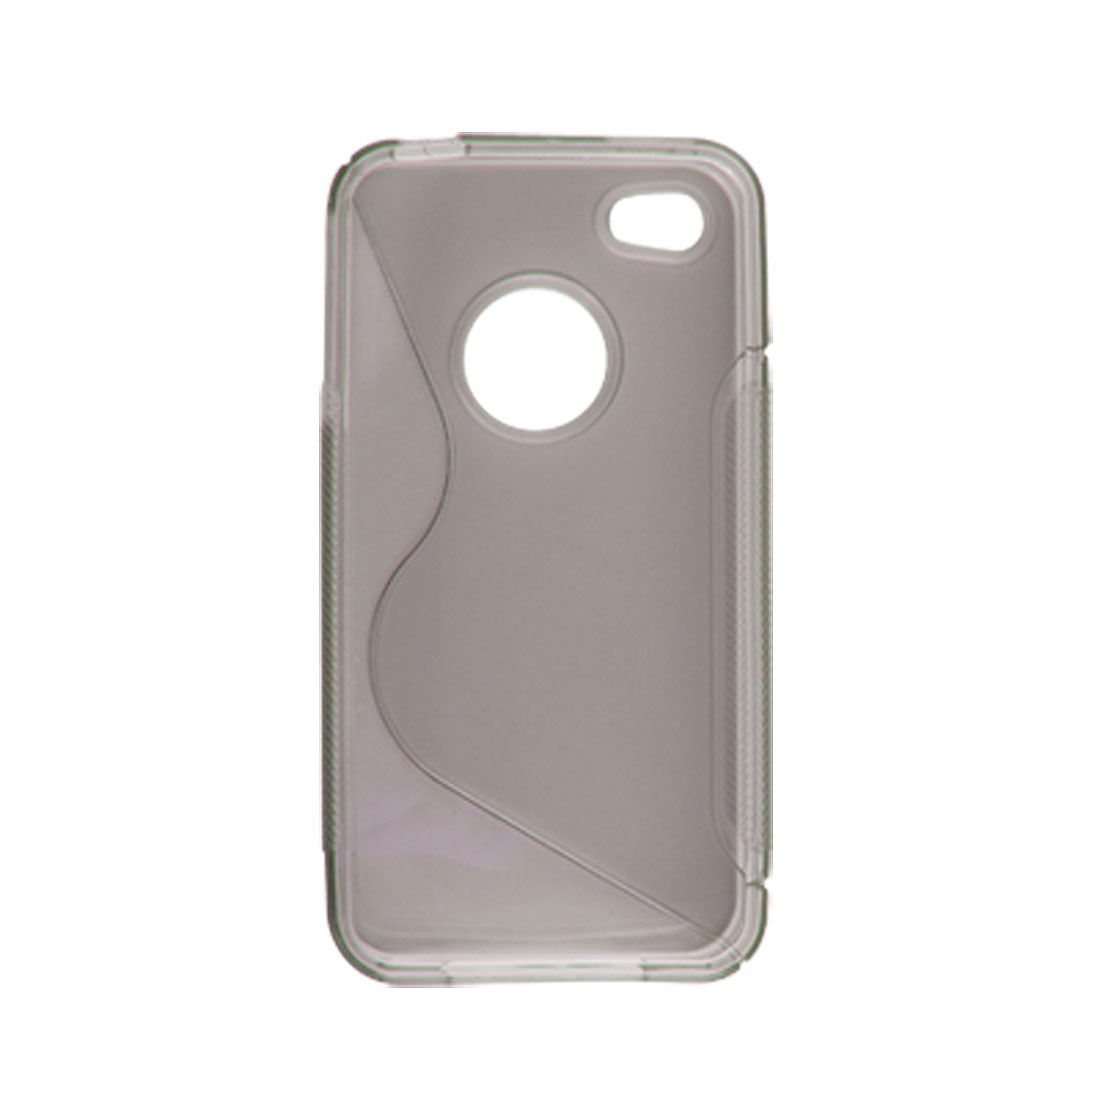 Clear Gray Soft Plastic Side Nonslip Back Case for iPhone 4 4G